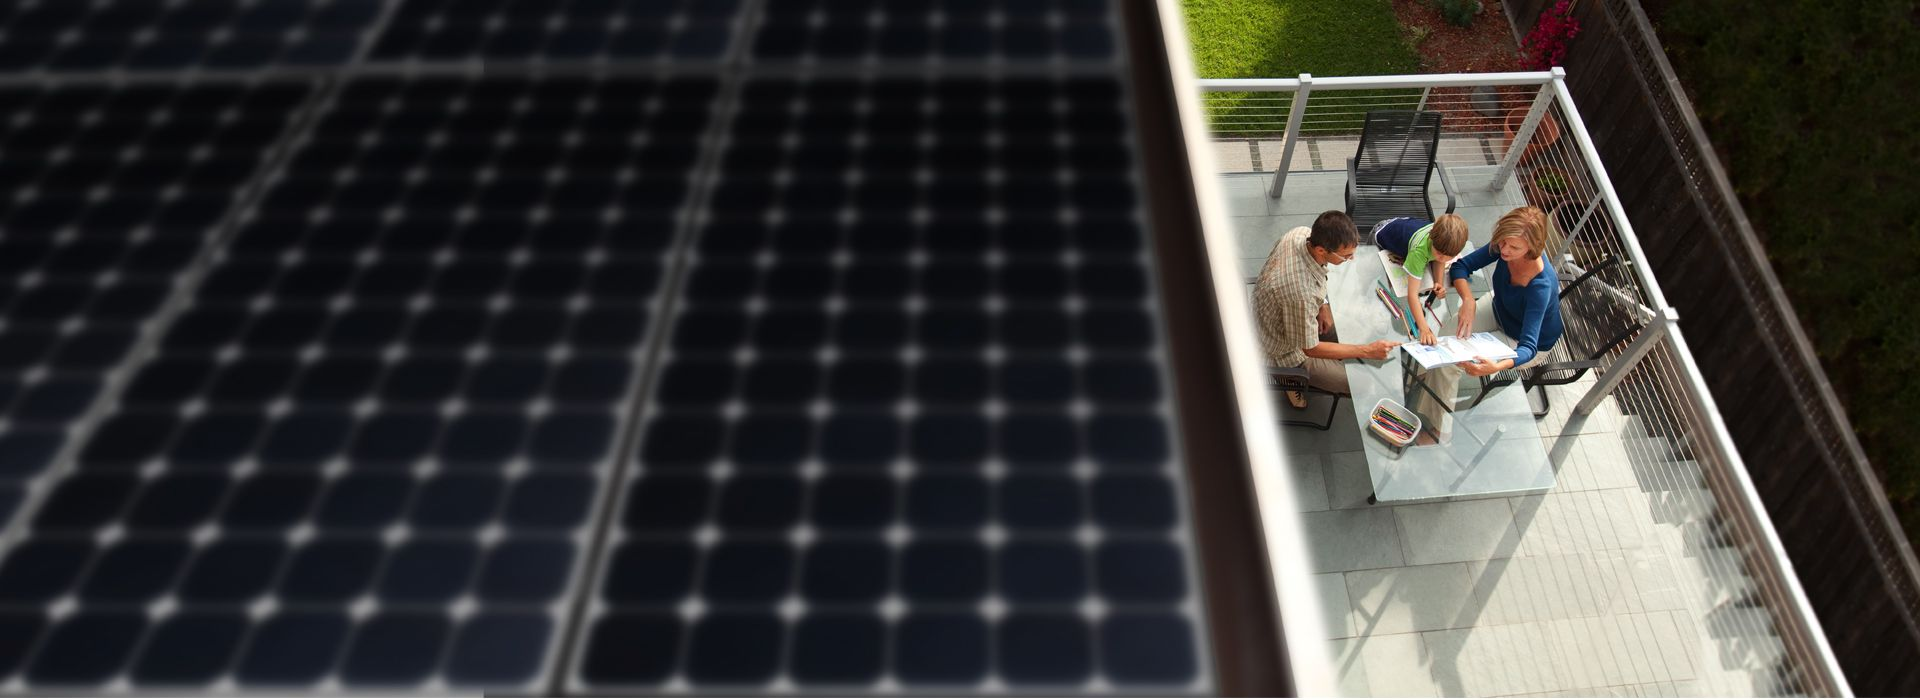 rooftop solar panels on an Italian home